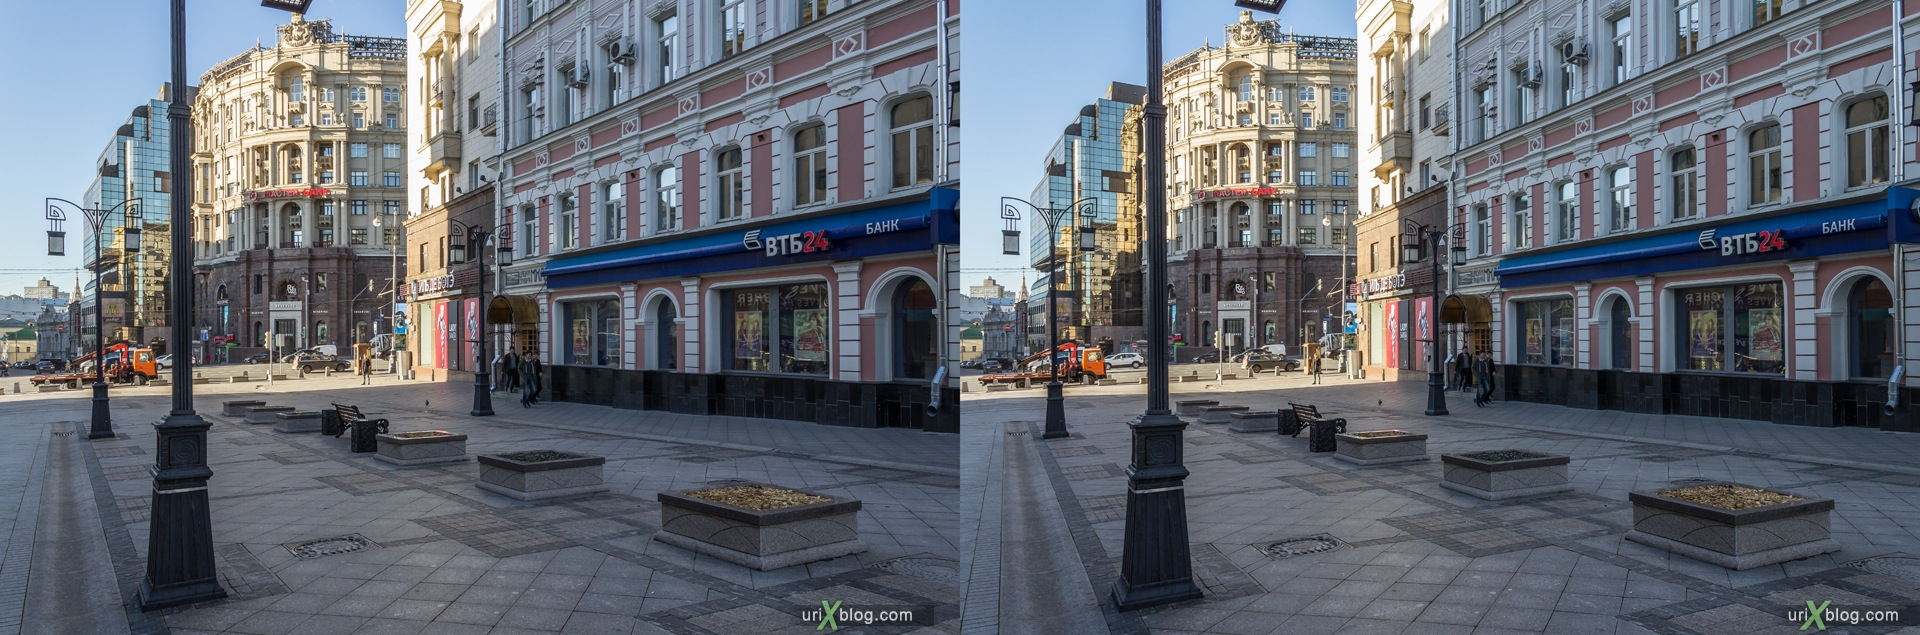 2013, Moscow, Russia, Kamergersky alley, street, new pedestrian zone, 3D, stereo pair, cross-eyed, crossview, cross view stereo pair, stereoscopic